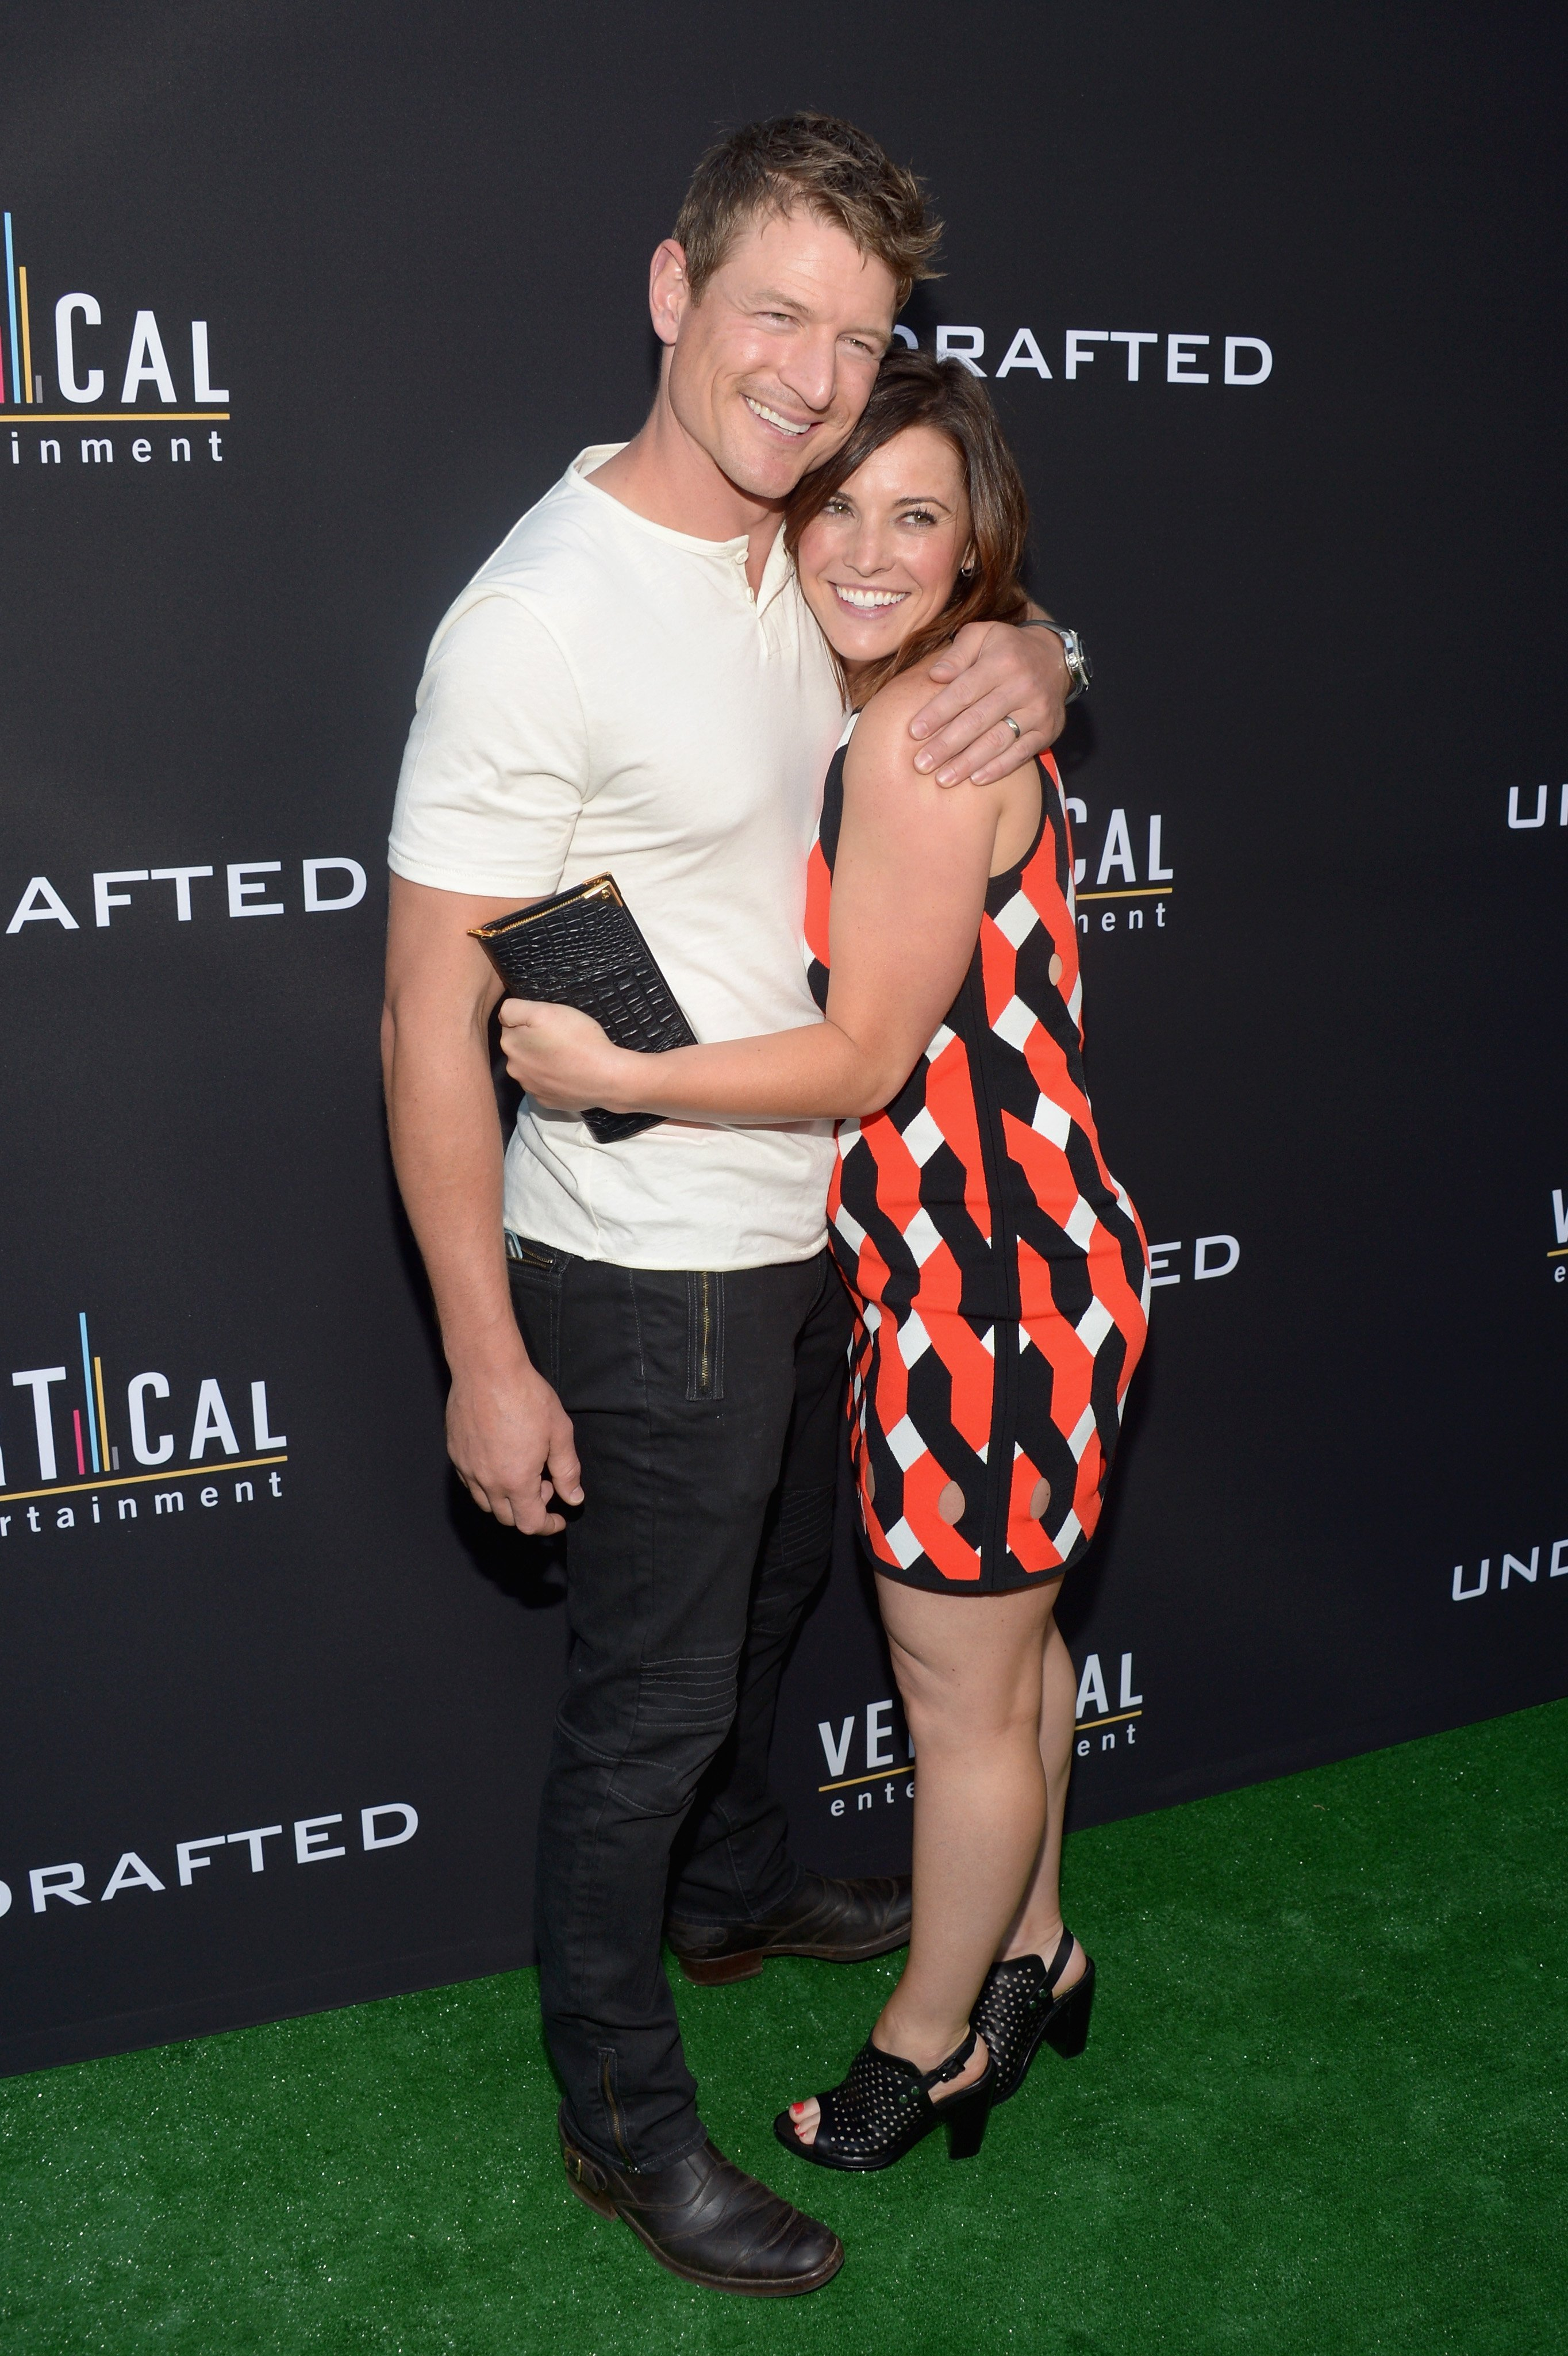 """Philip Winchester and Megan Coughlin attend the premiere of Vertical Entertainment's """"Undrafted"""" at ArcLight Hollywood on July 11, 2016. 